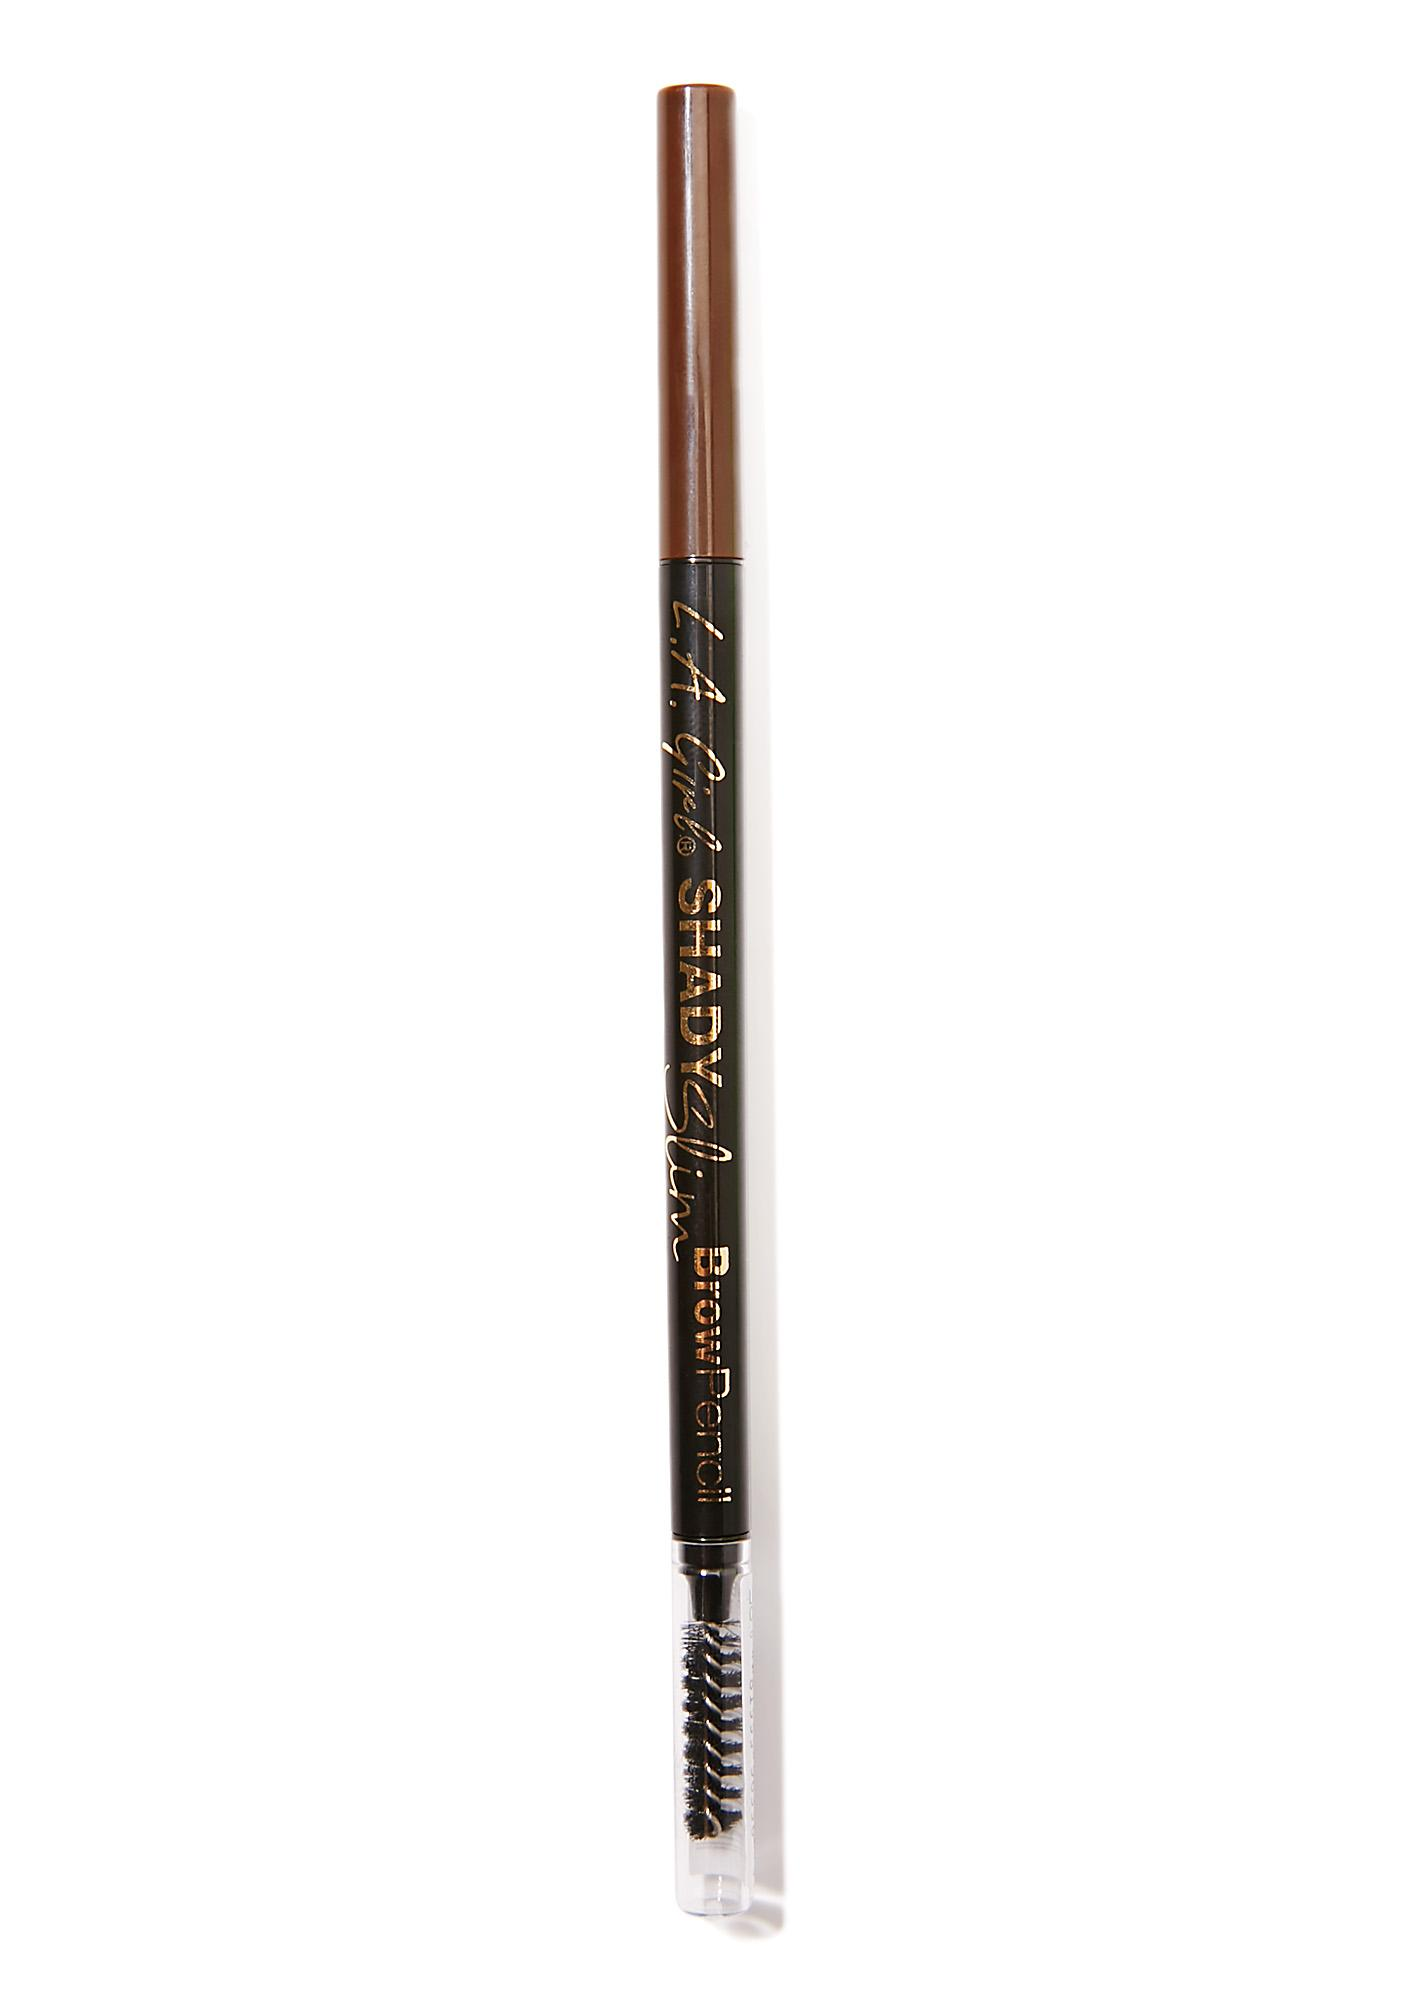 LA Girl Shady Slim Medium Brown Brow Pencil